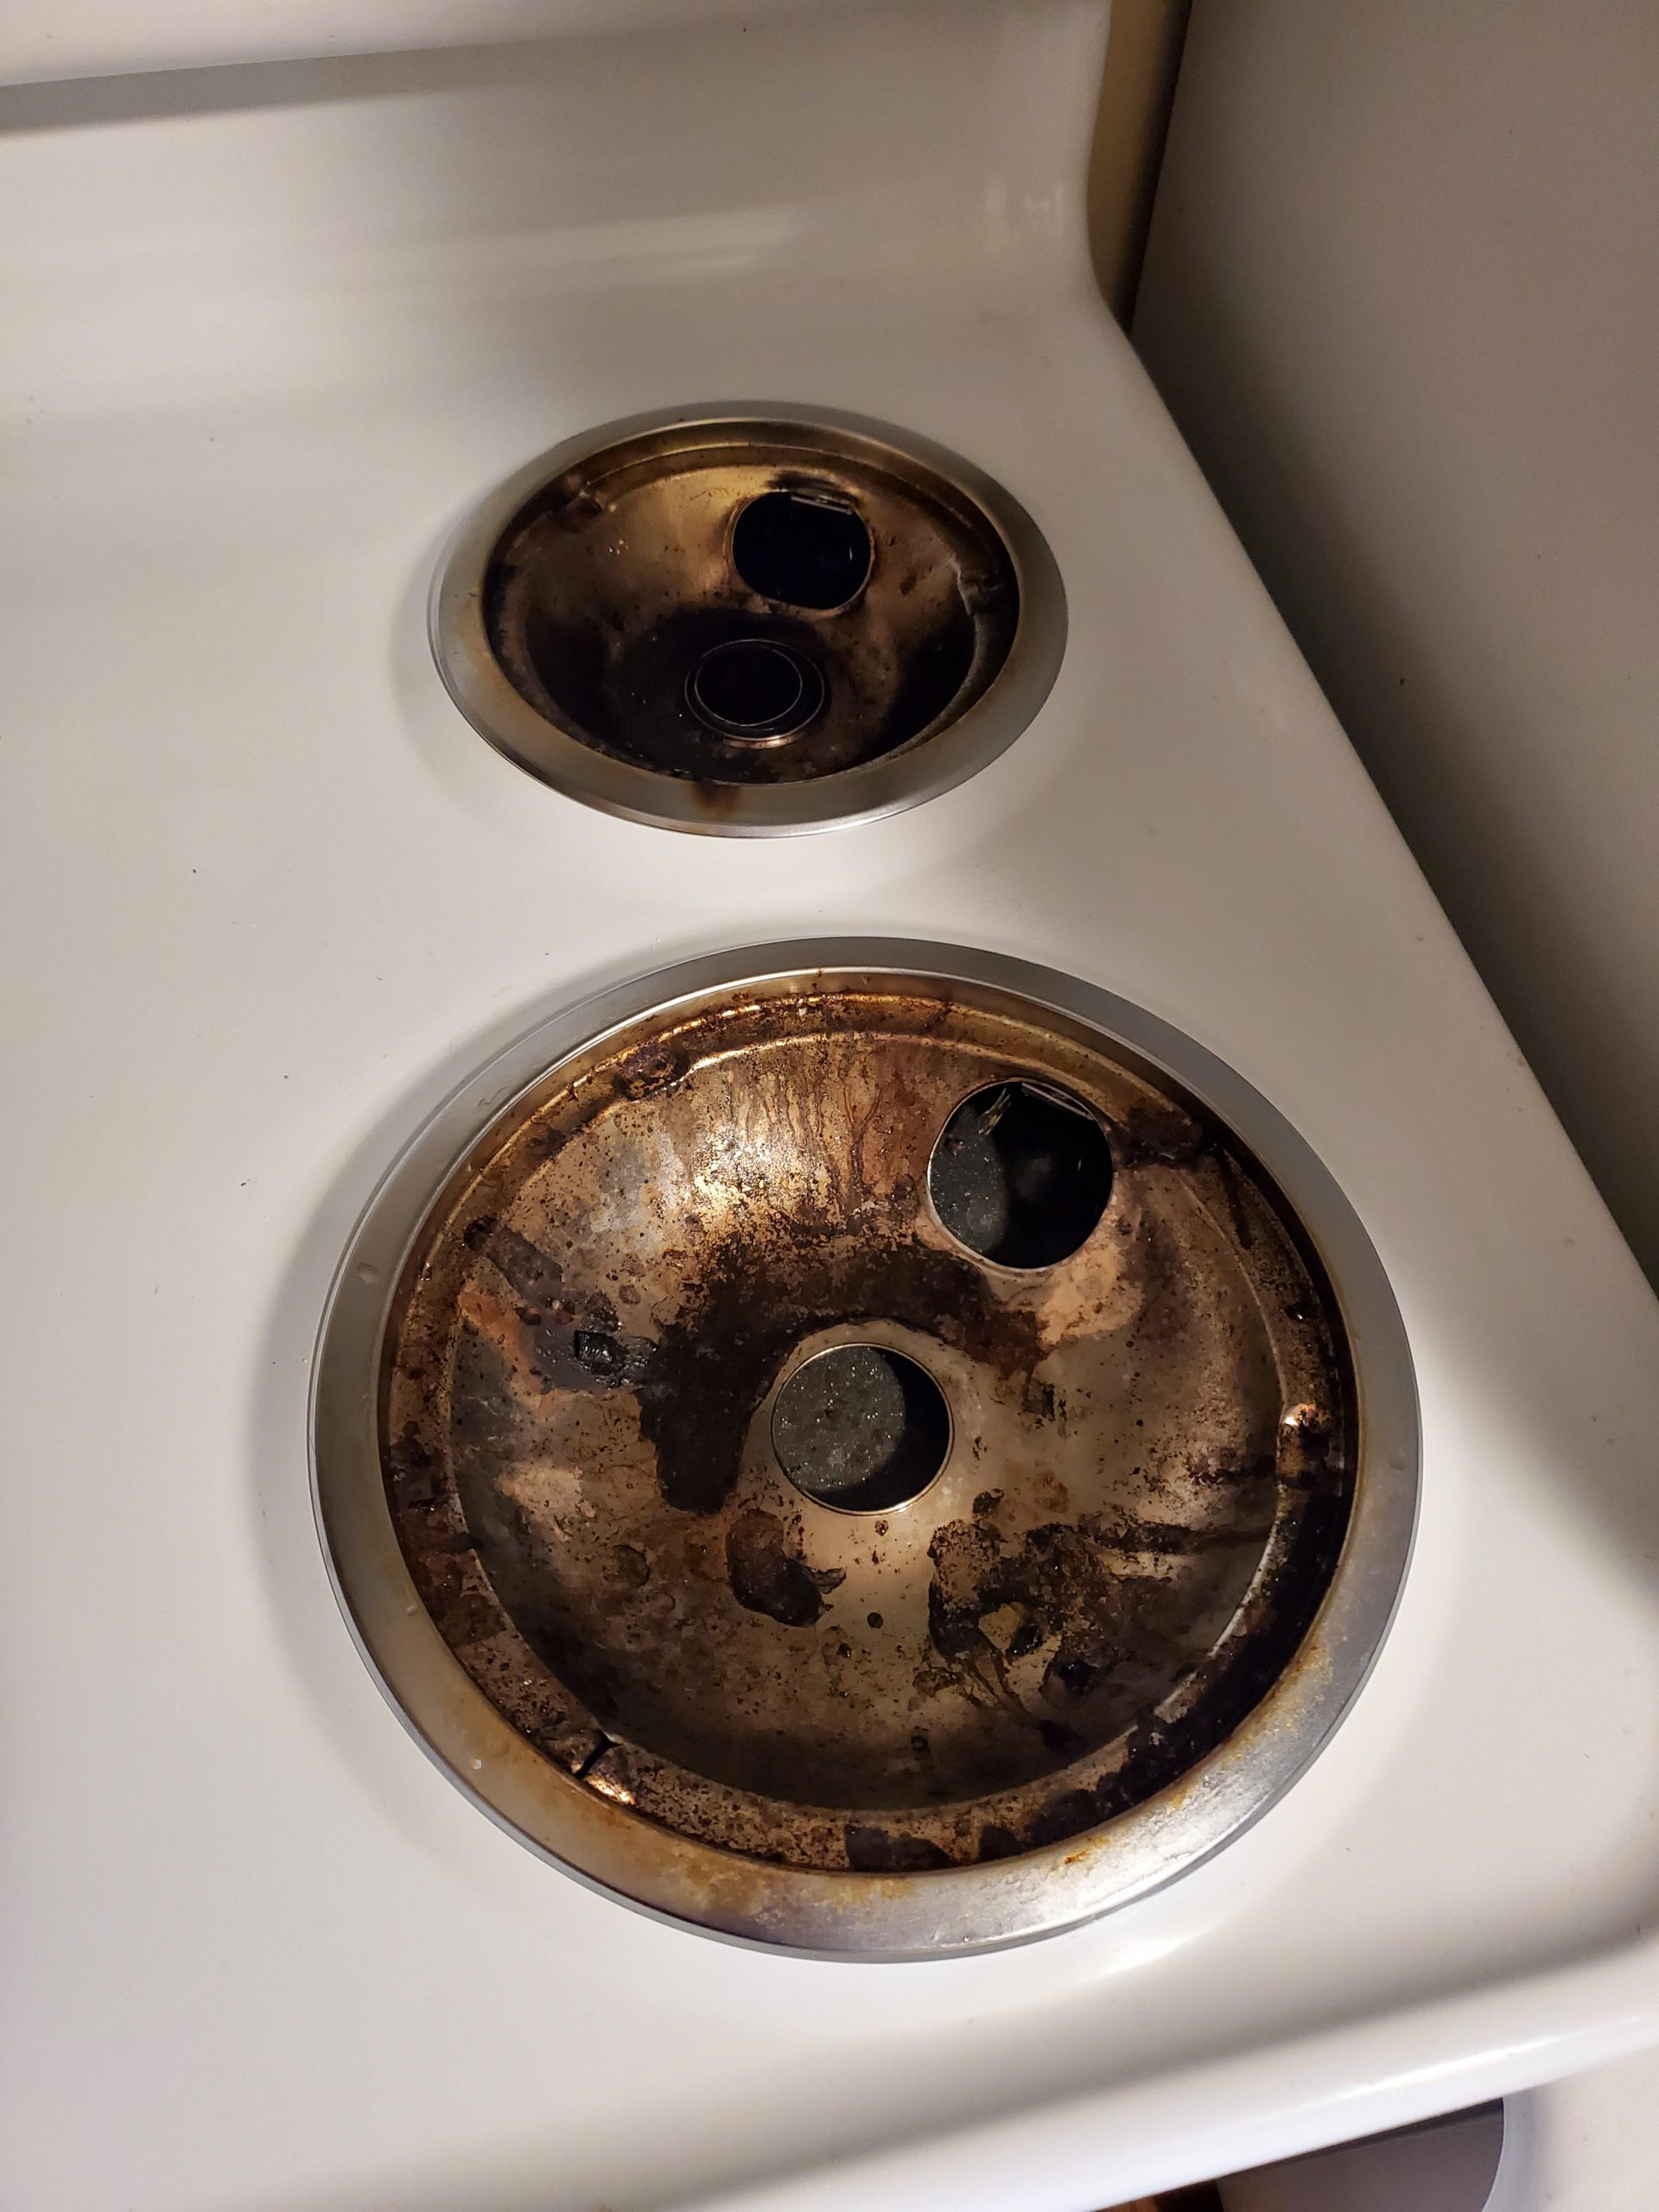 uukbblao4b751 scaled - Moving out of my apartment soon and haven't ever cleaned these (3 years). What's the easiest way to make them silver again? - home, hobbies